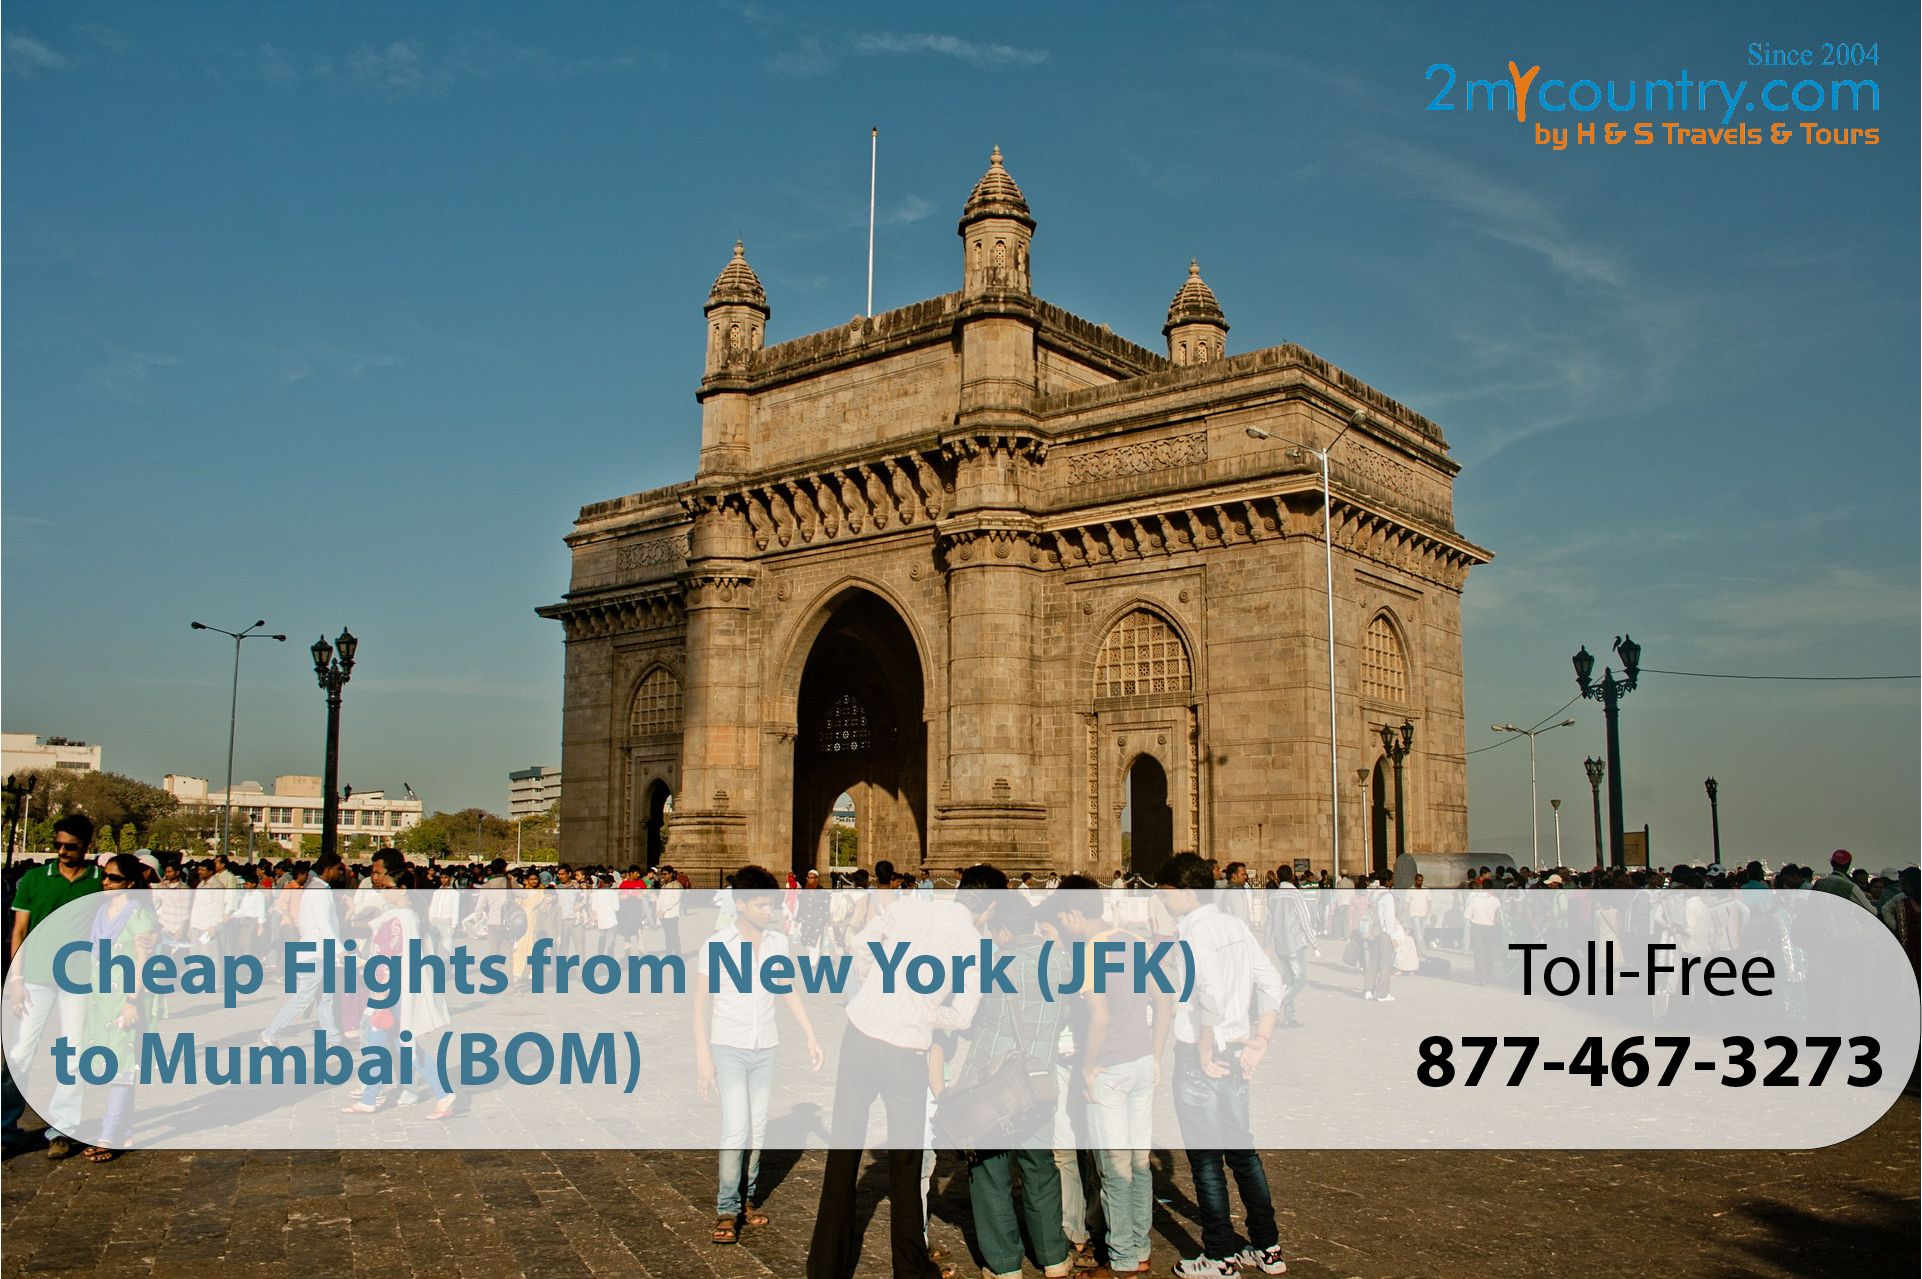 Choose 2mycountry to book your next flight from JFK to BOM. We are available 24/7 with BBB A+ Ratings. CALL NOW!  #jfktobom  #cheapflights  #flighttickets  #2mycountry  #airfares #jfktobomflights #flightdeals #cheapairline #cheapflights